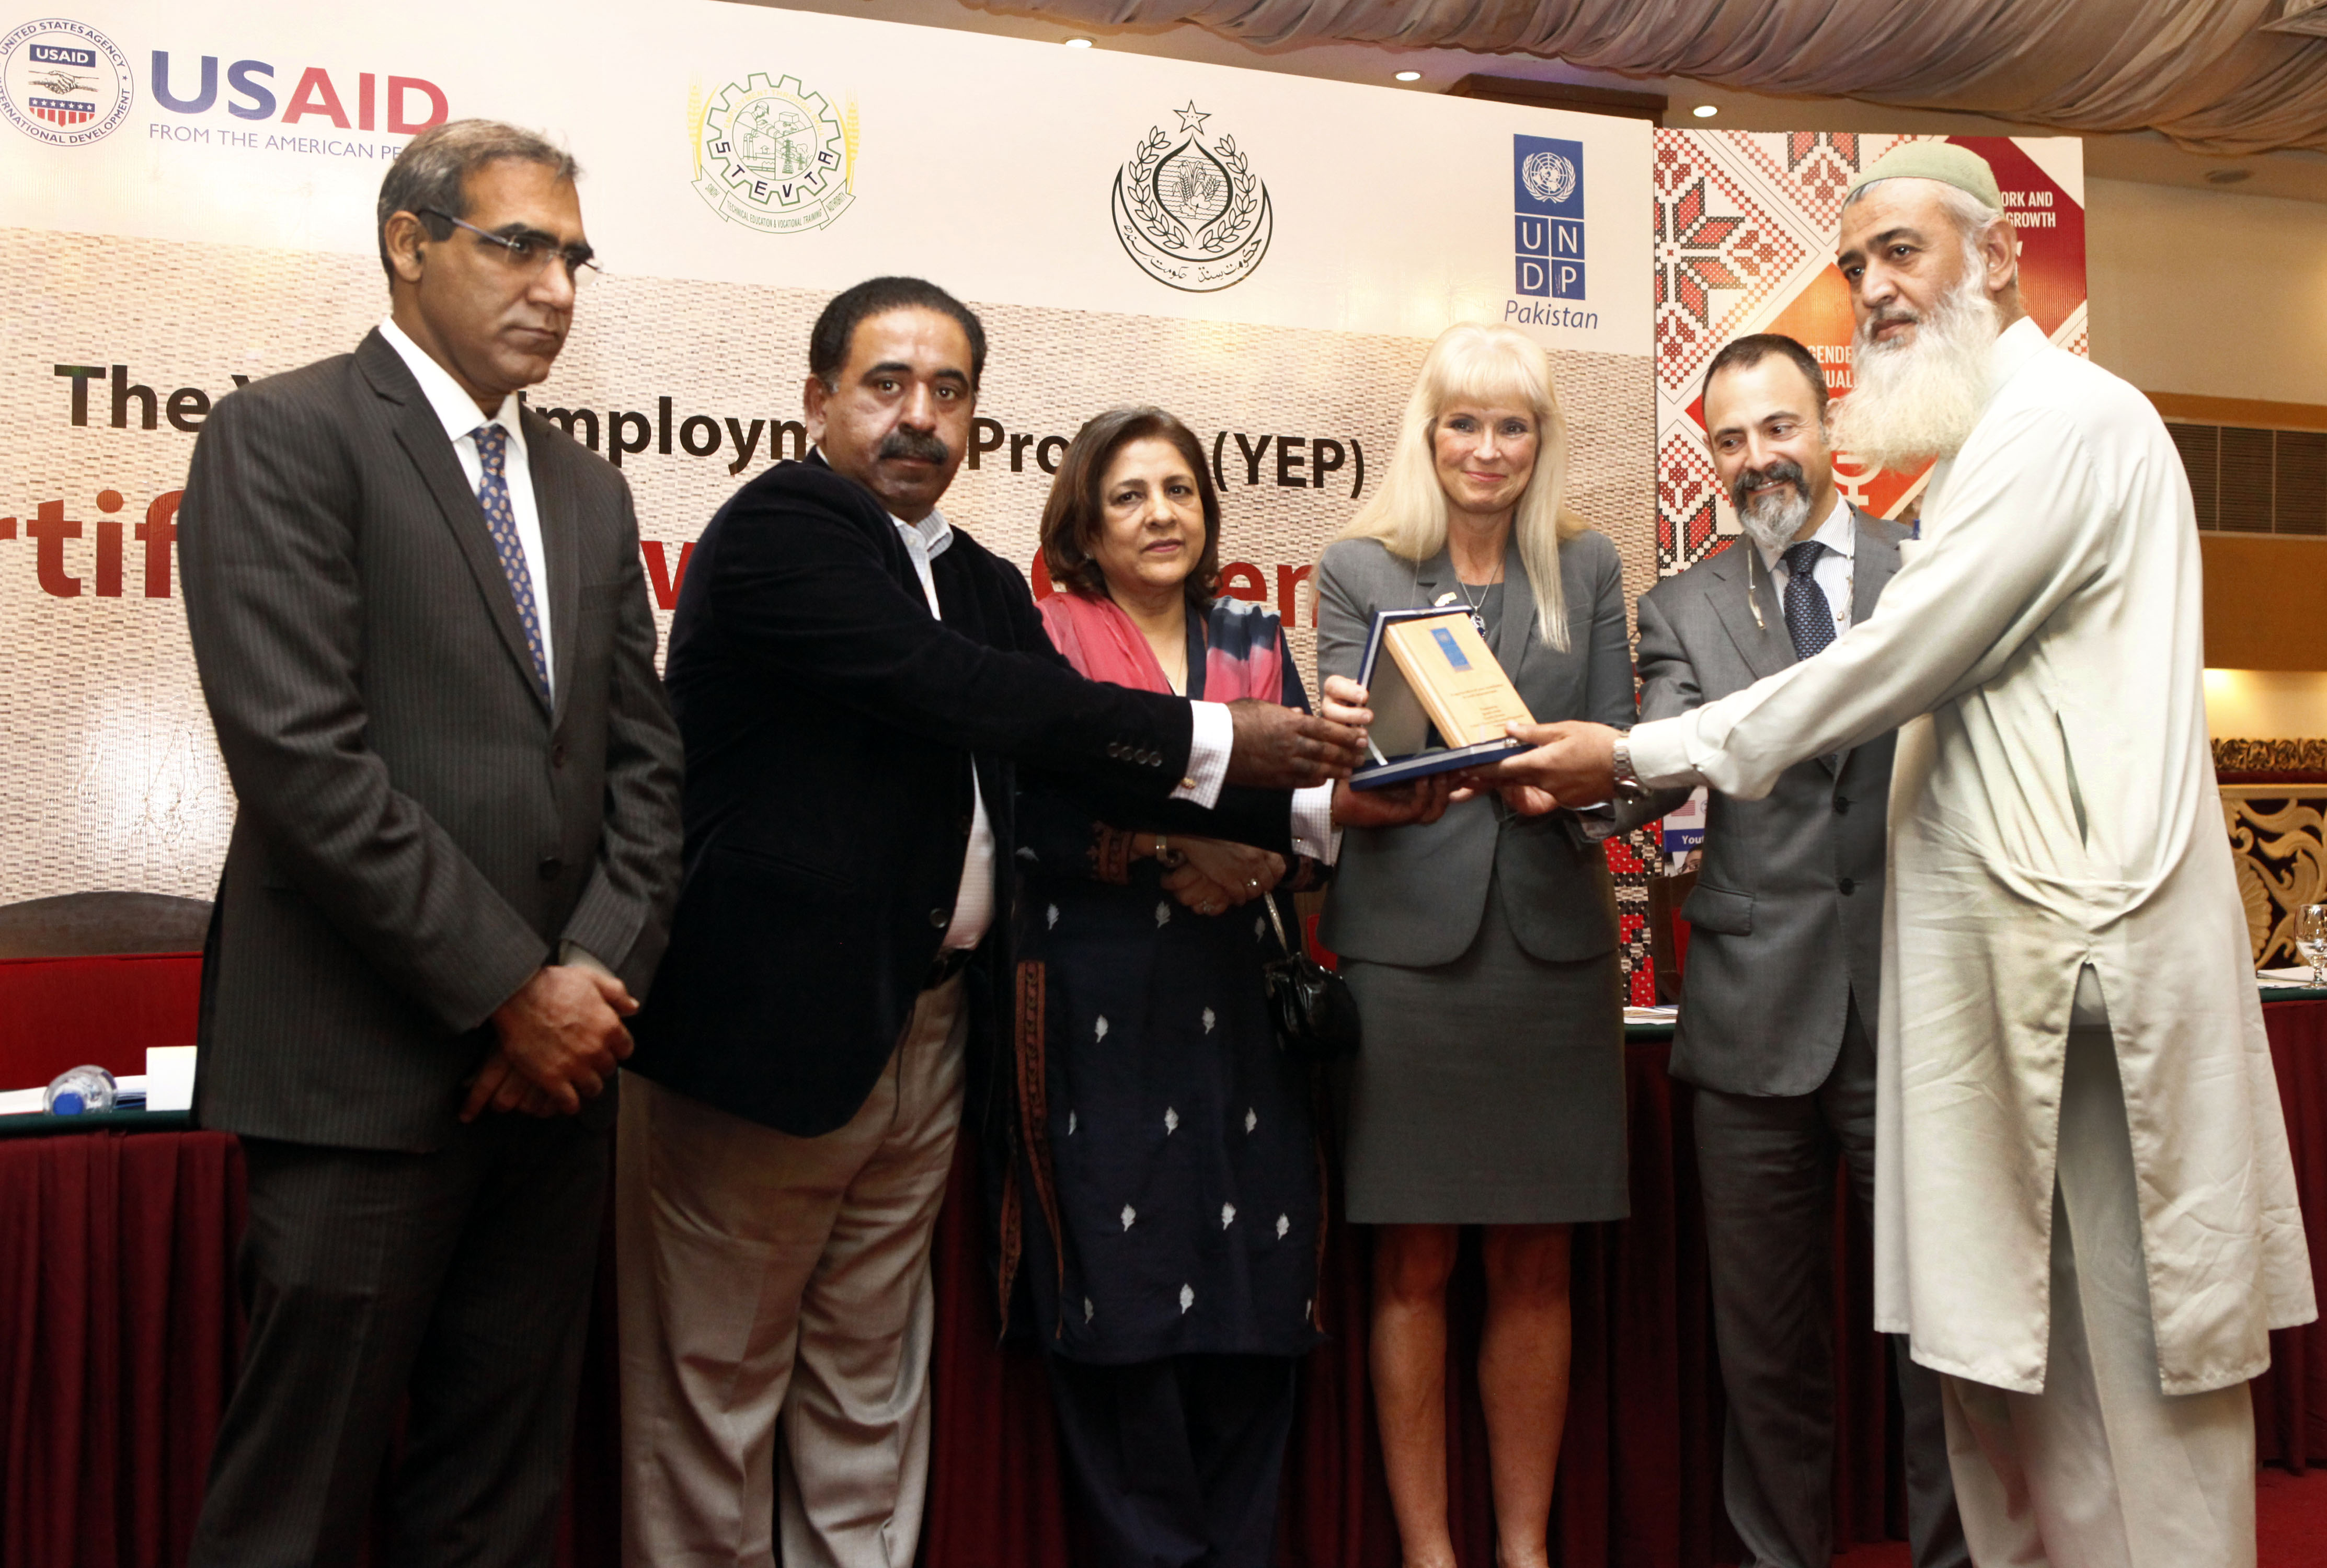 USAID and UNDP Partner Up to Provide Employment Training to